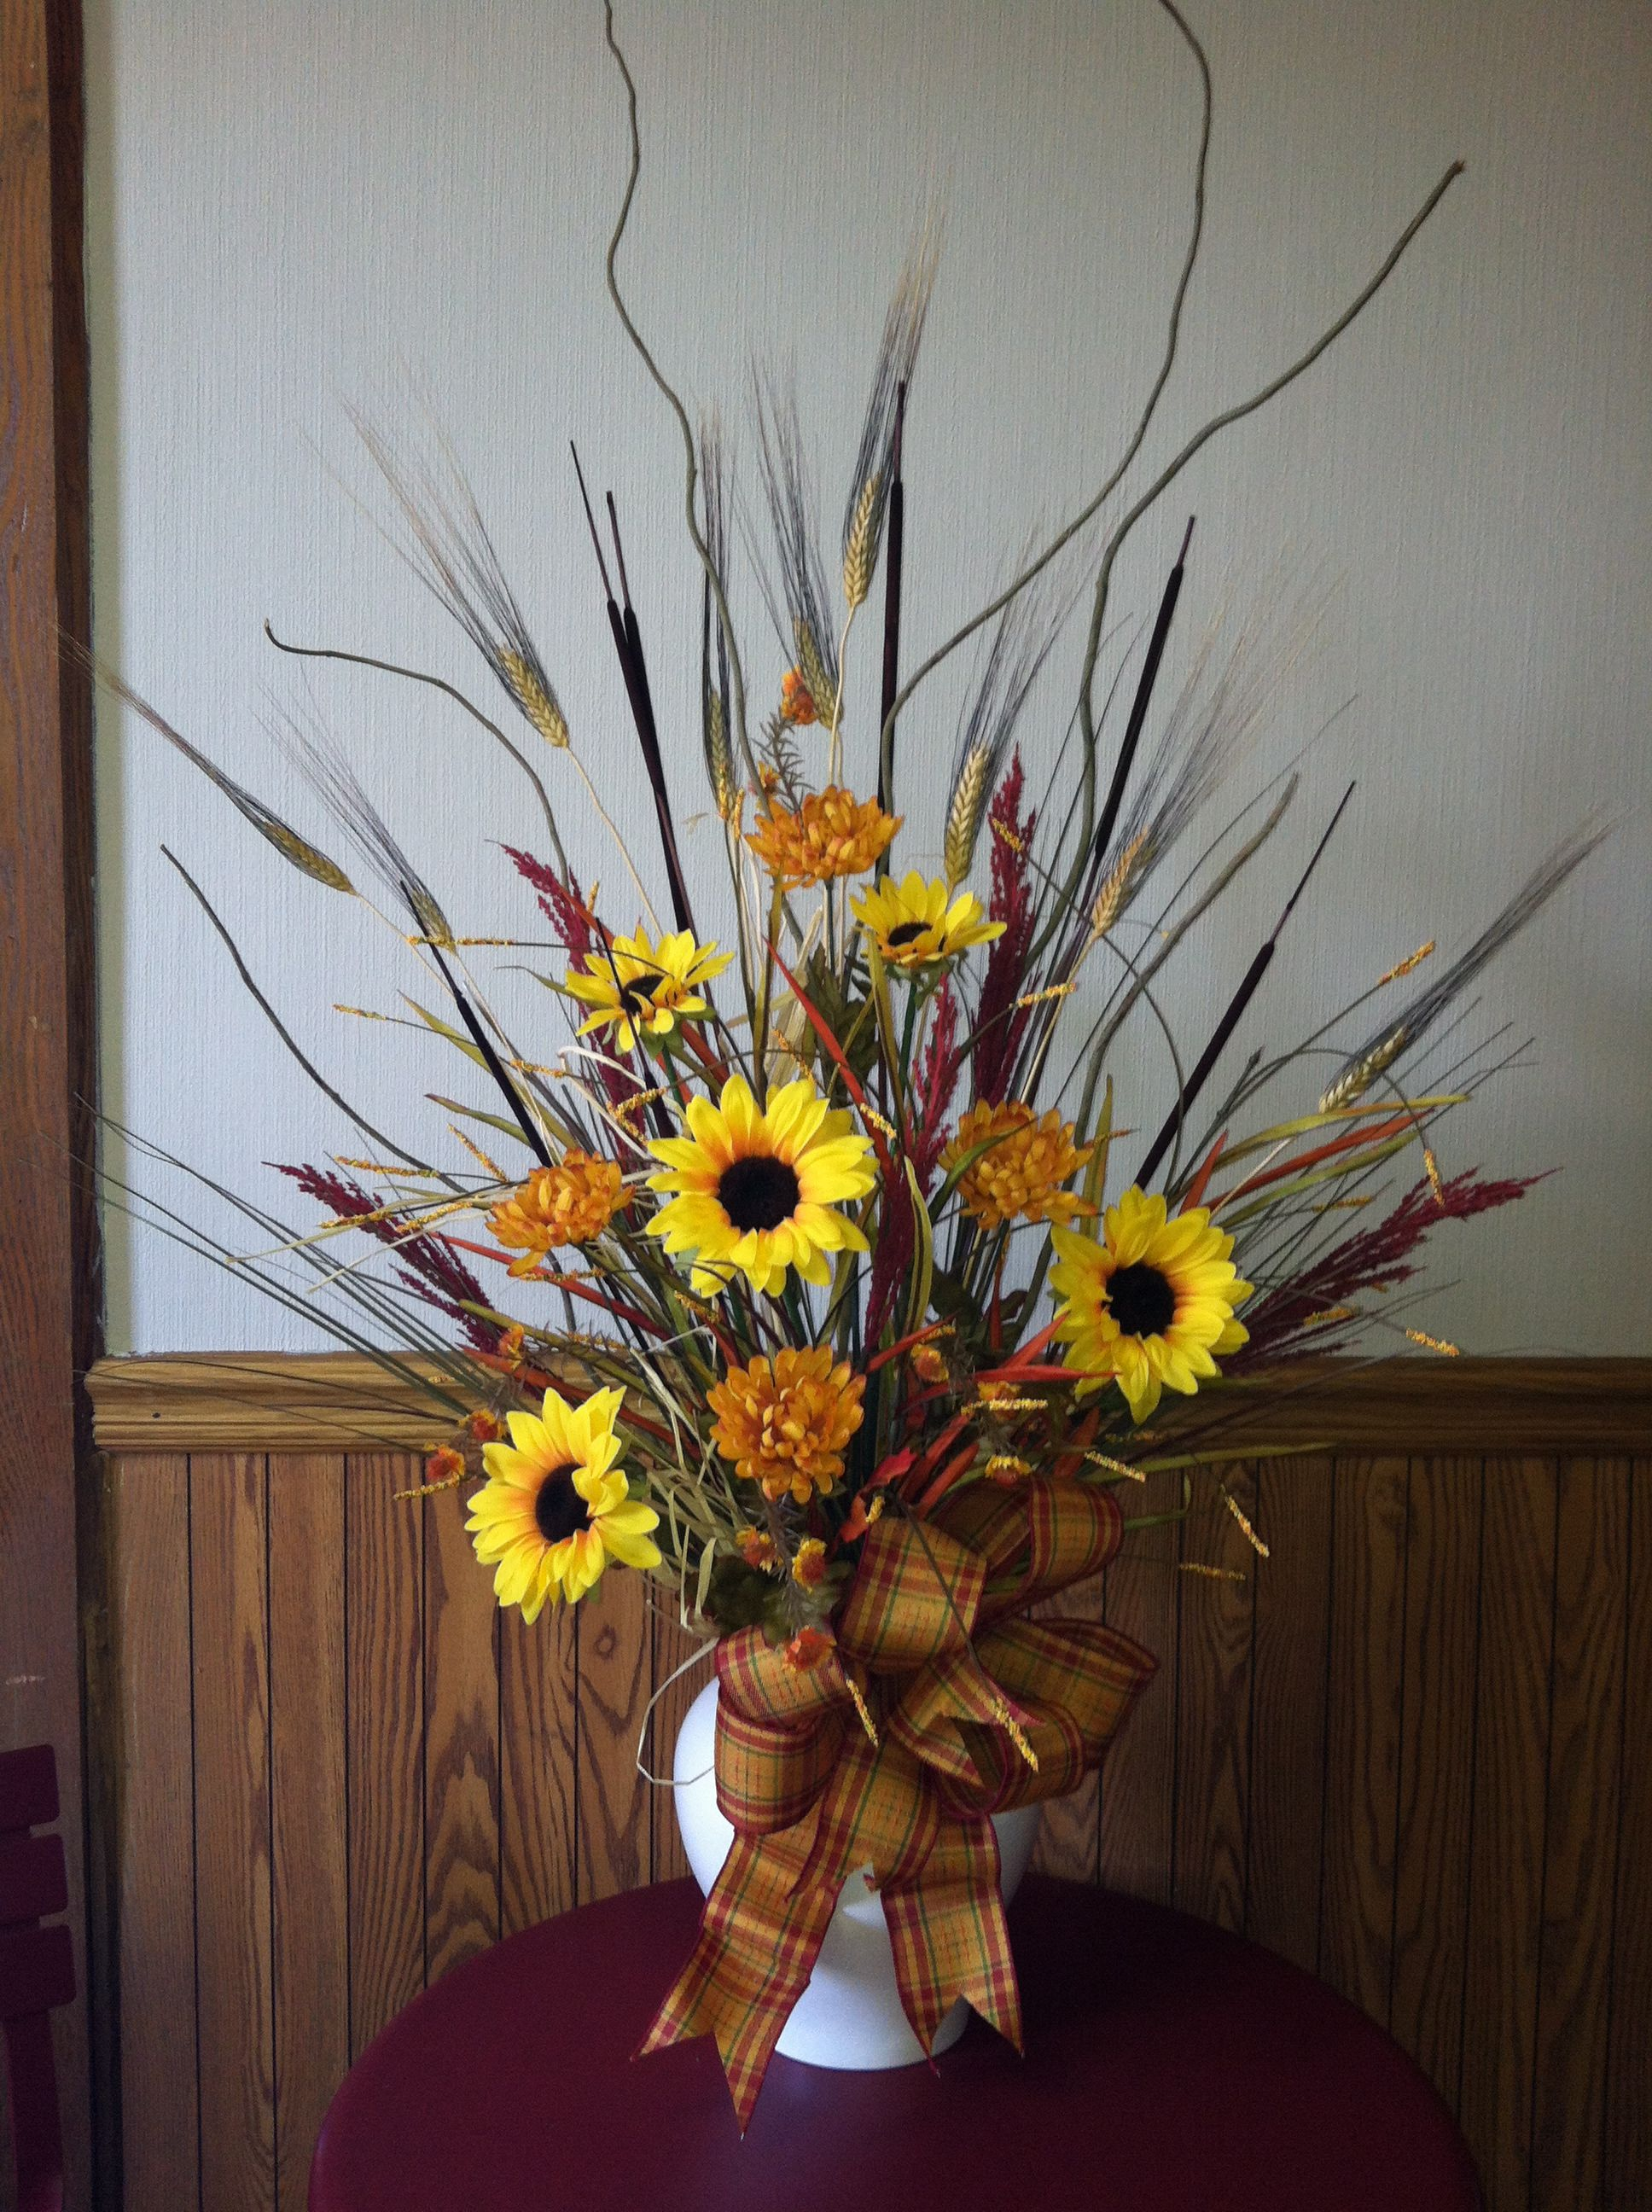 Tall flower arrangement with sunflowers and mums for fall